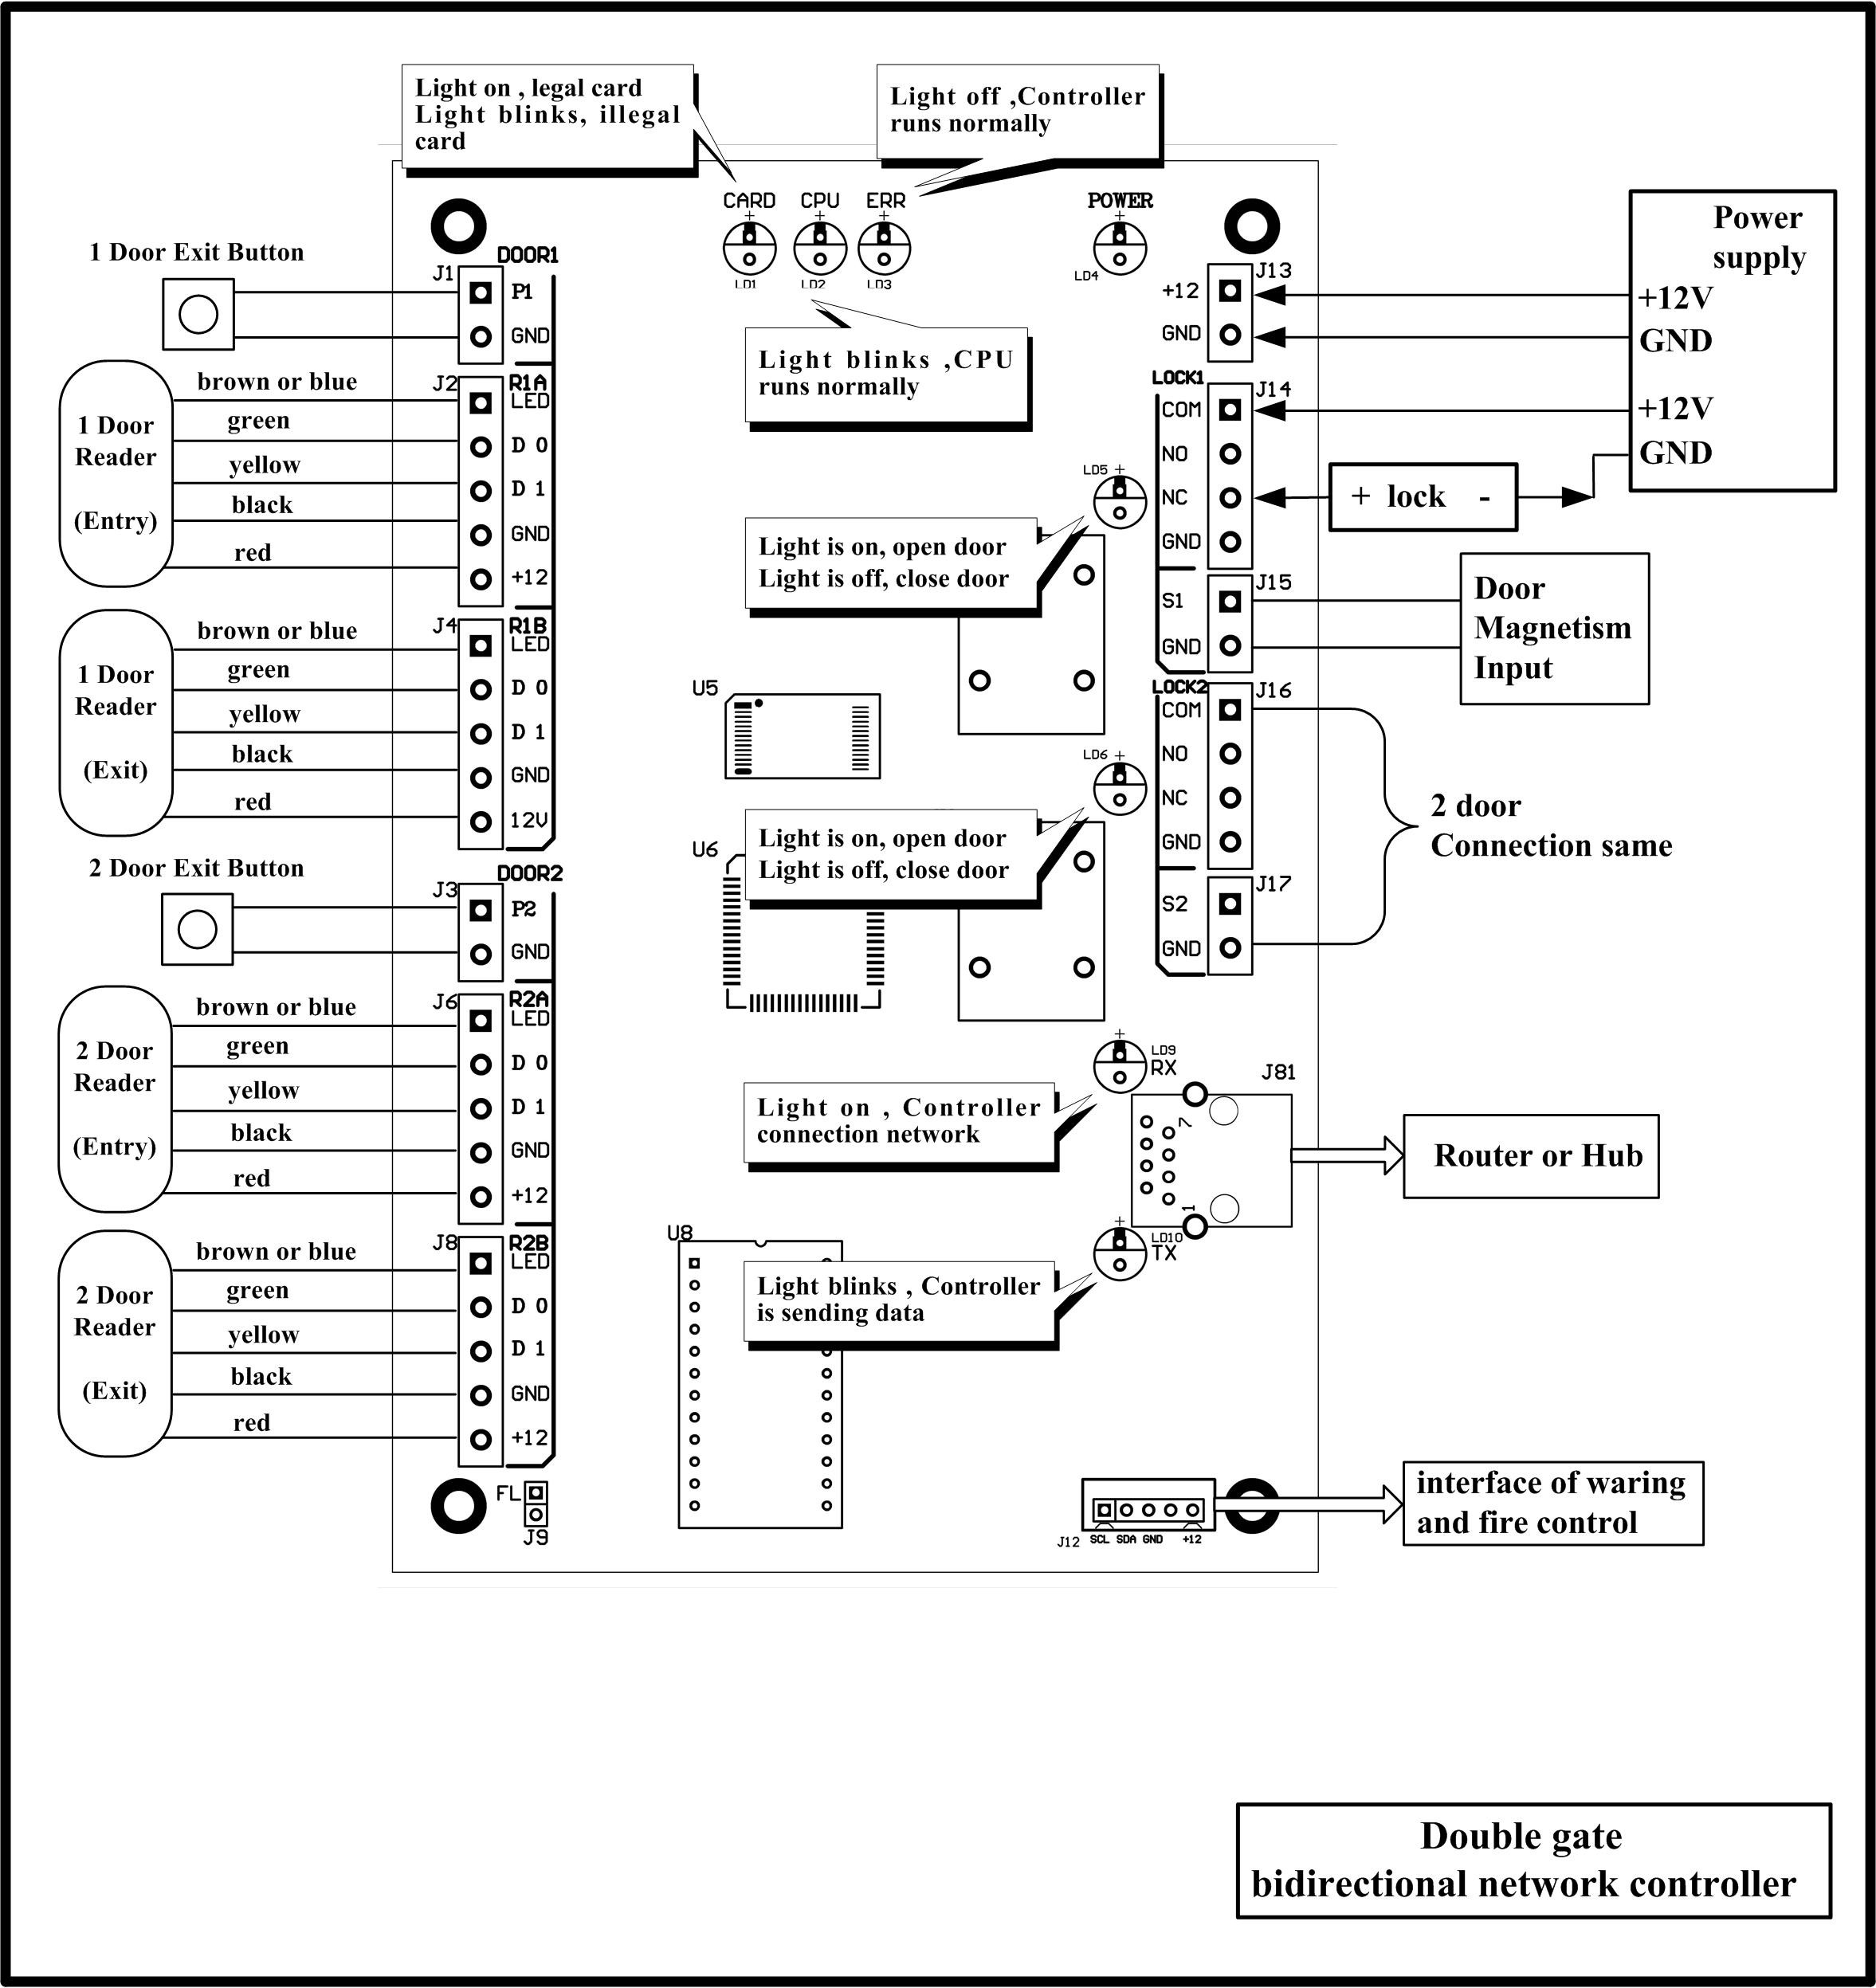 emergency door release wiring diagram hyundai excel stereo access control card reader download